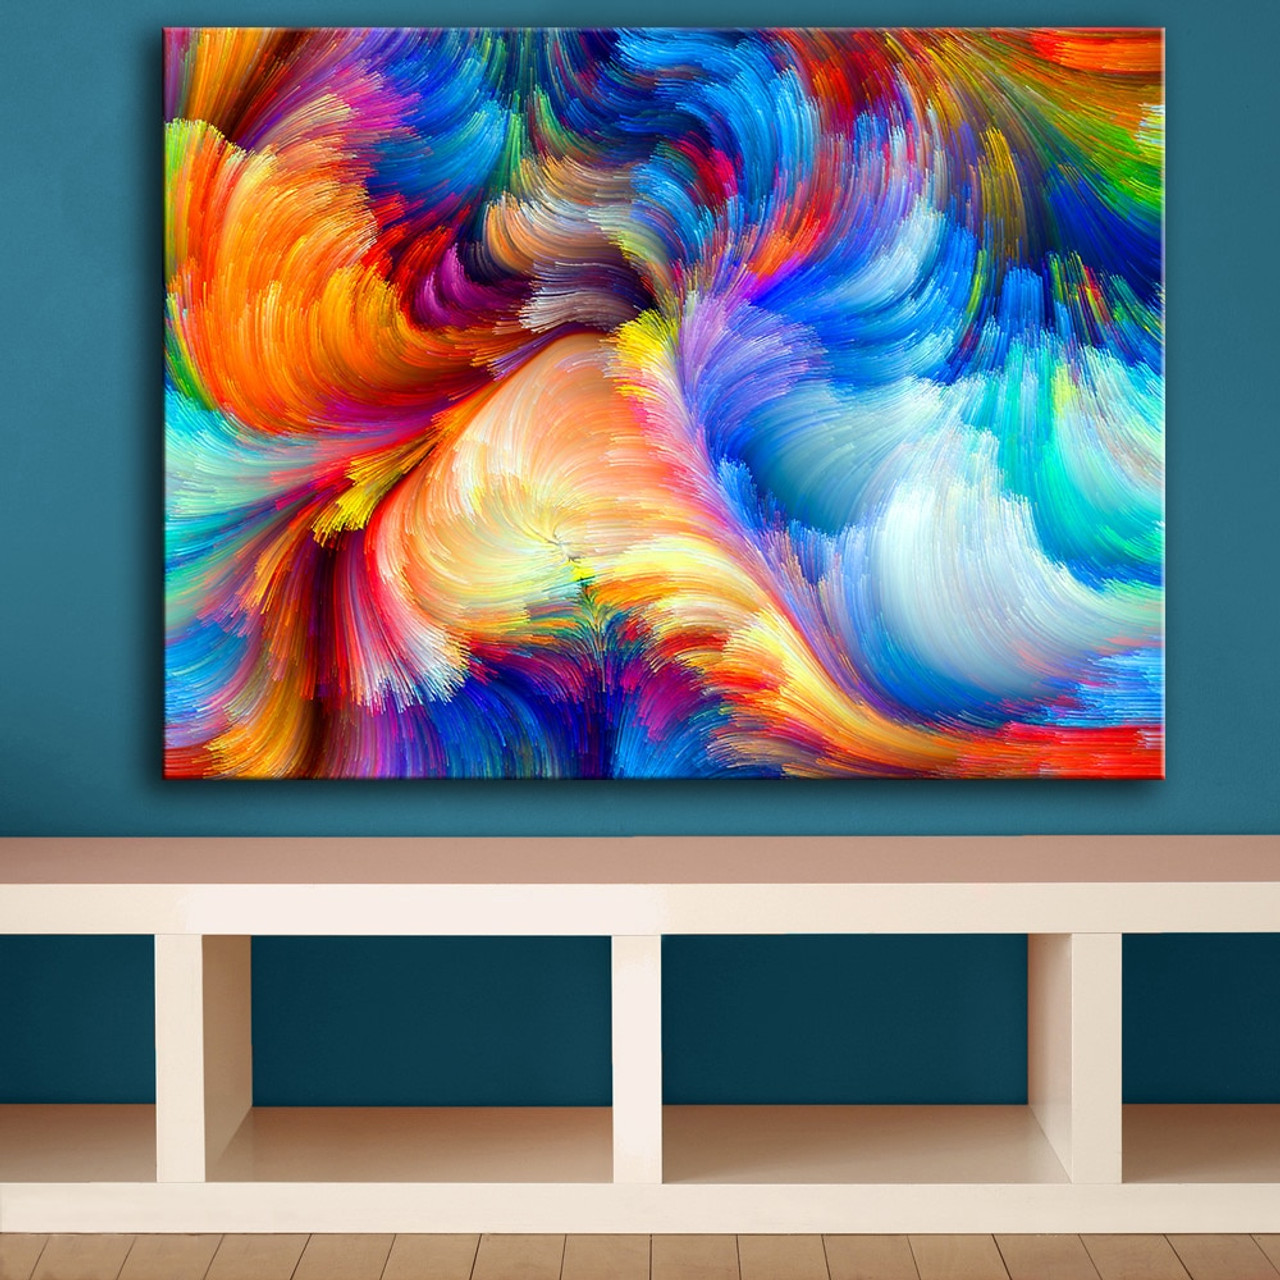 Huge Size Rainbow The Color Blur Pattern Wall Painting For Home Decor Ideas Print On Canvas Oil Painting No Frame Onshopdeals Com